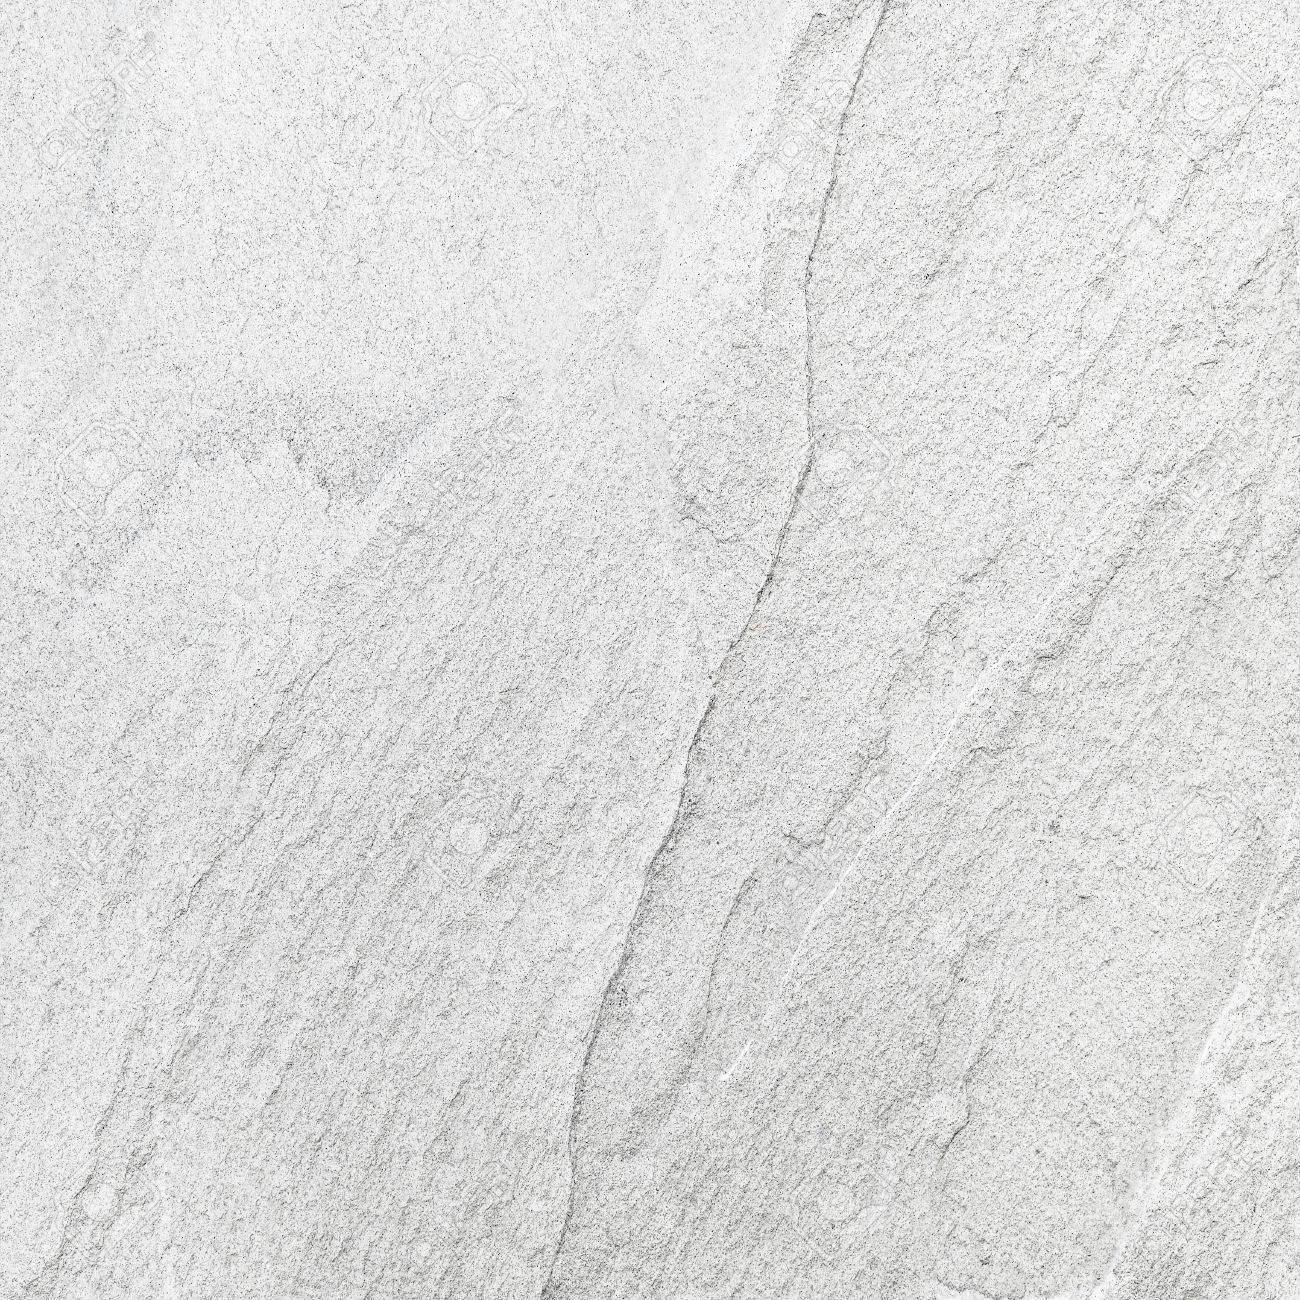 Pattern Of Modern White Wall Surface And Texture White Wall Stone Stock Photo Picture And Royalty Free Image Image 56898242